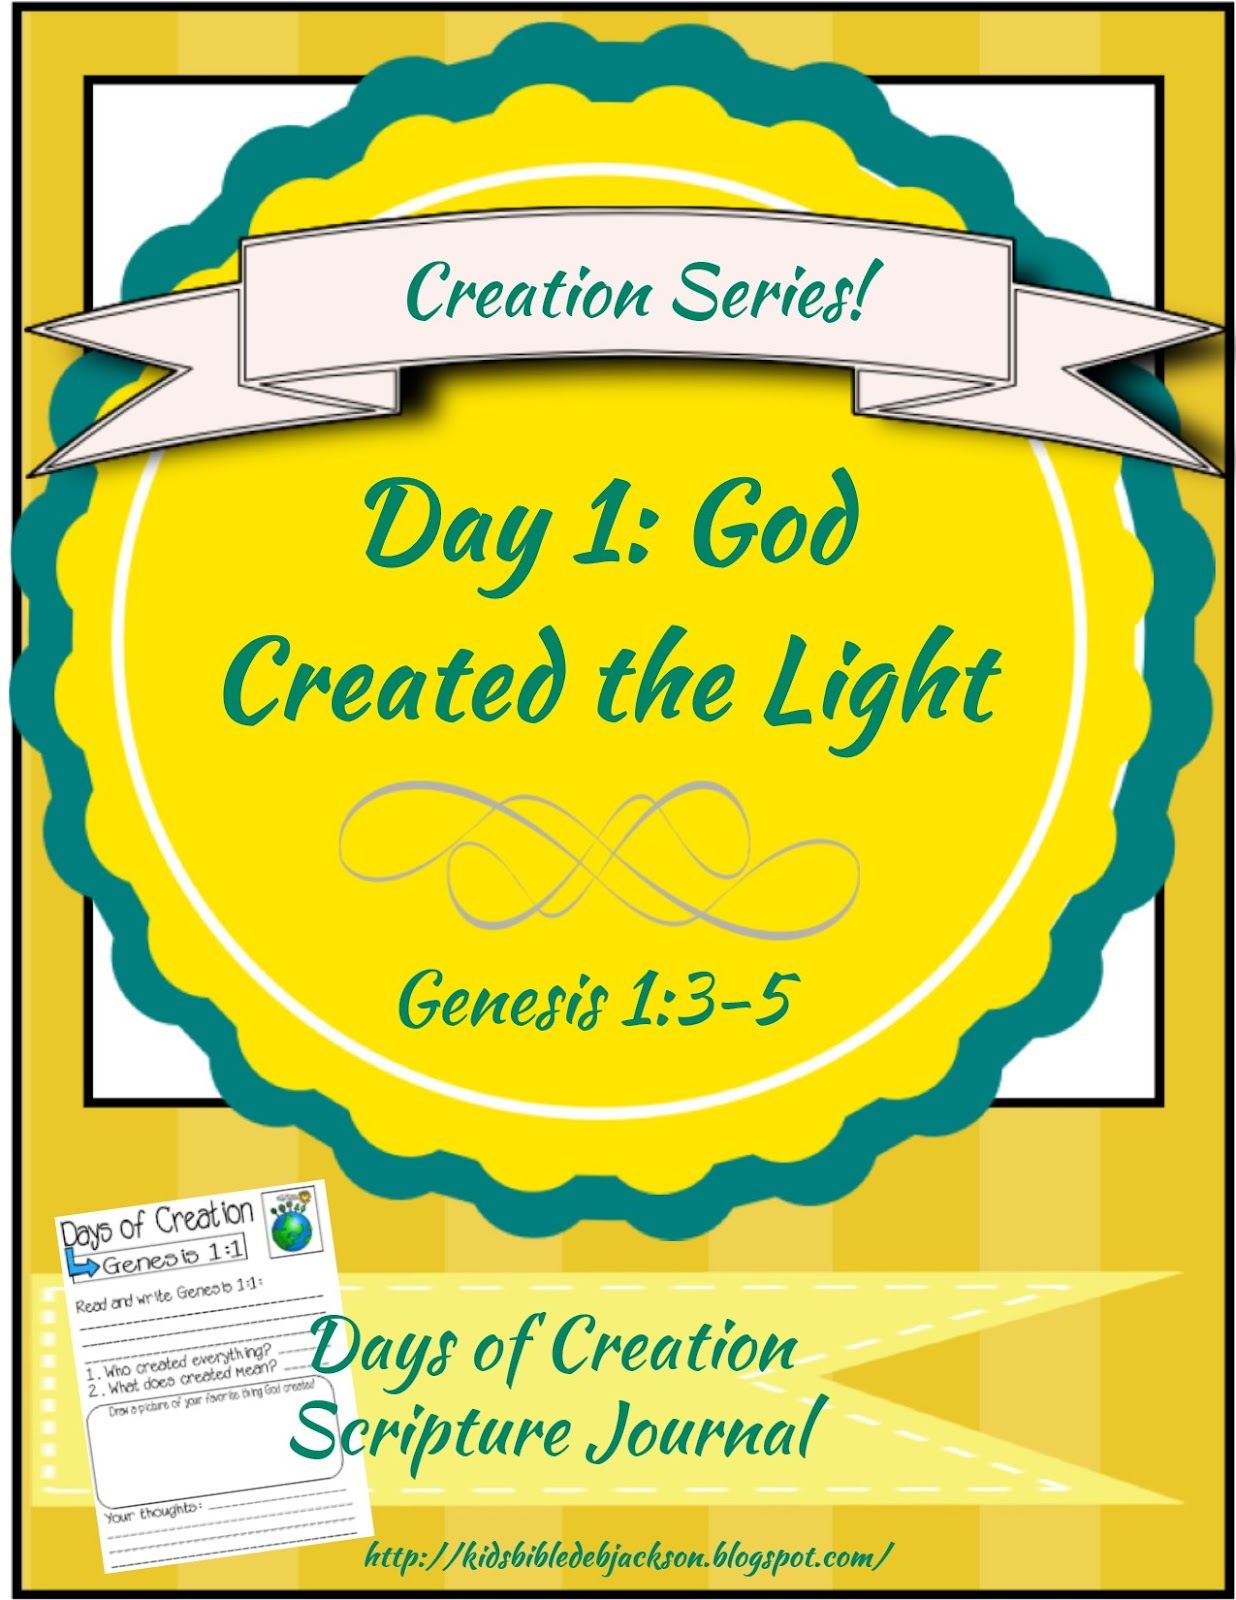 http://kidsbibledebjackson.blogspot.com/2015/01/the-creation-for-kids-day-1.html